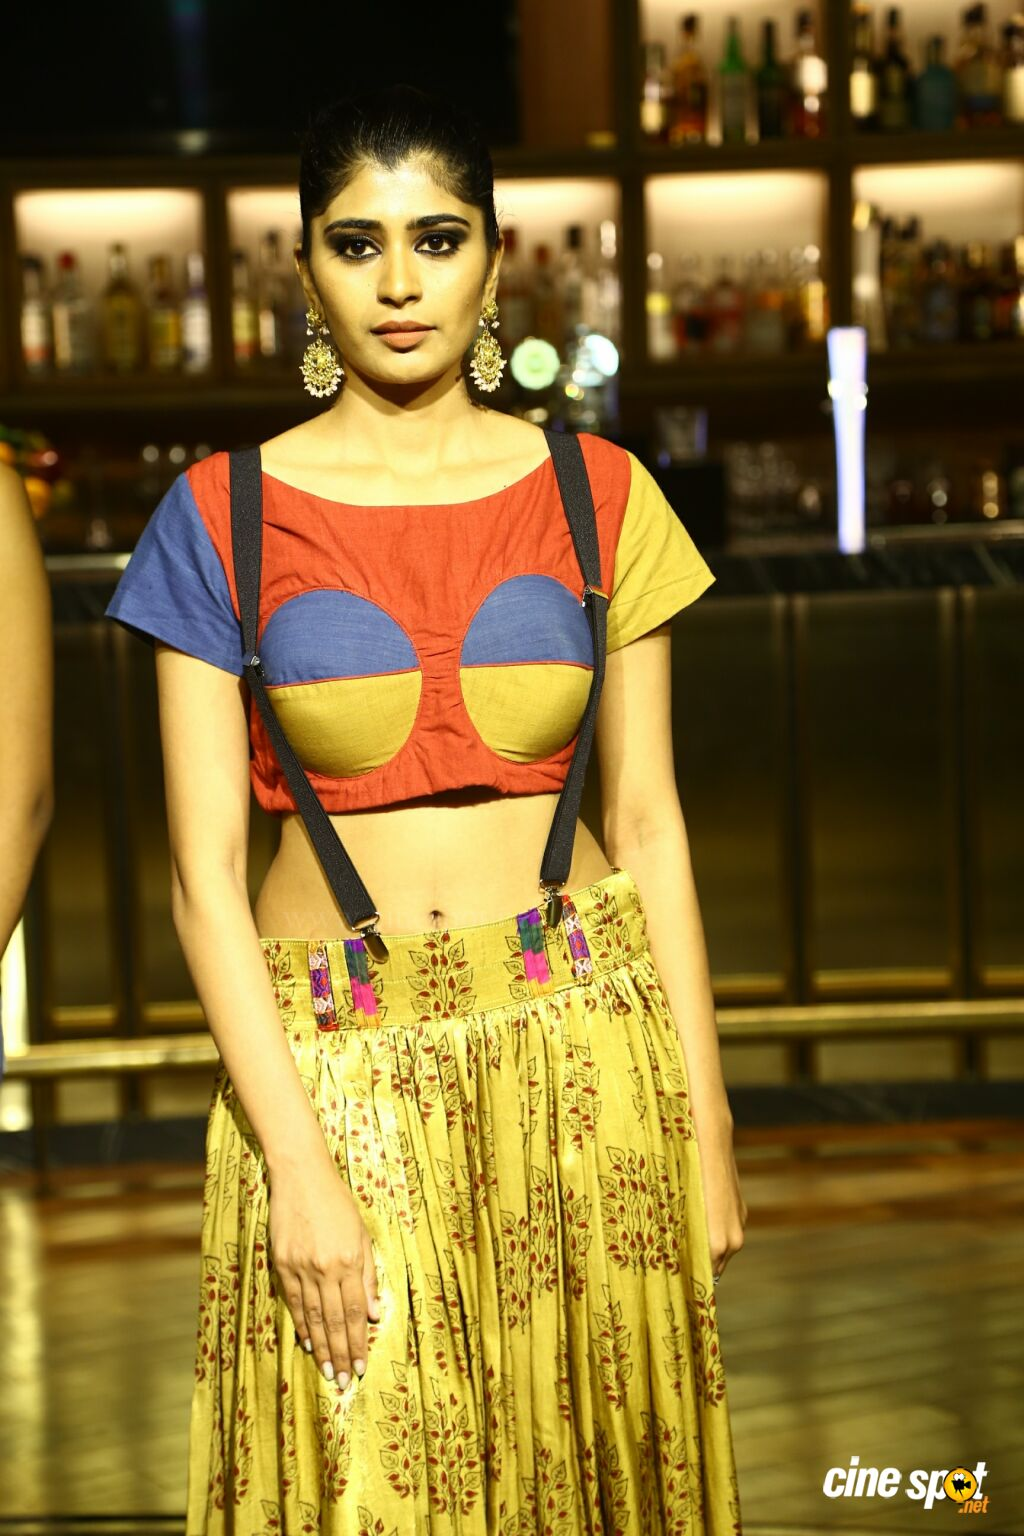 Apsara Reddy in Association with Park Hyatt Chennai Presented Limitless Love (6)